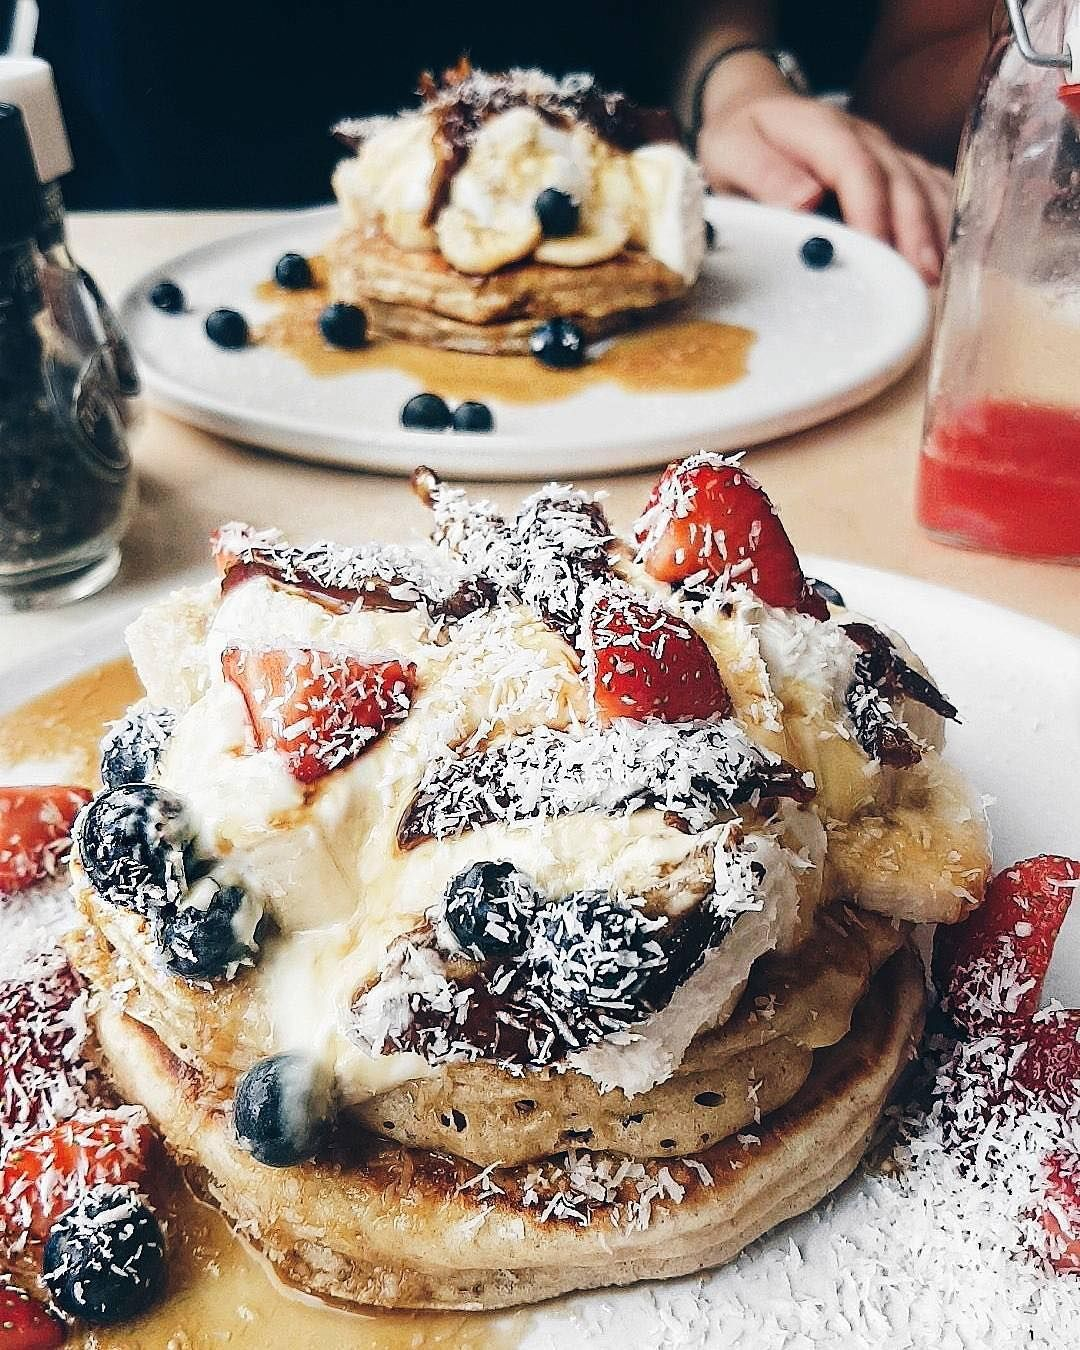 Moak Pancakes On Instagram Dreamy Days Dreamy Pancakes Mookpancakes By Aishakira Savory Pancakes Pancakes Delicious